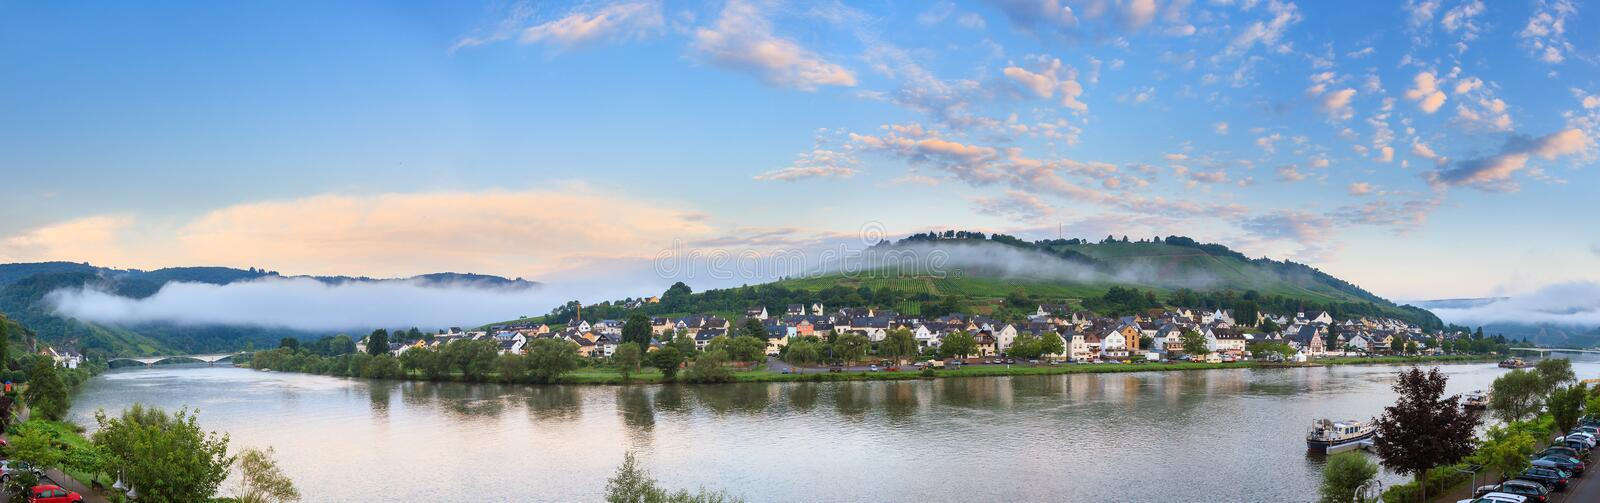 River Moselle panorama in Zell an der Mosel. Beautiful 180 degree panoramic sunrise view of the river Moselle at the small wine growing town Zell an der Mosel on royalty free stock photo